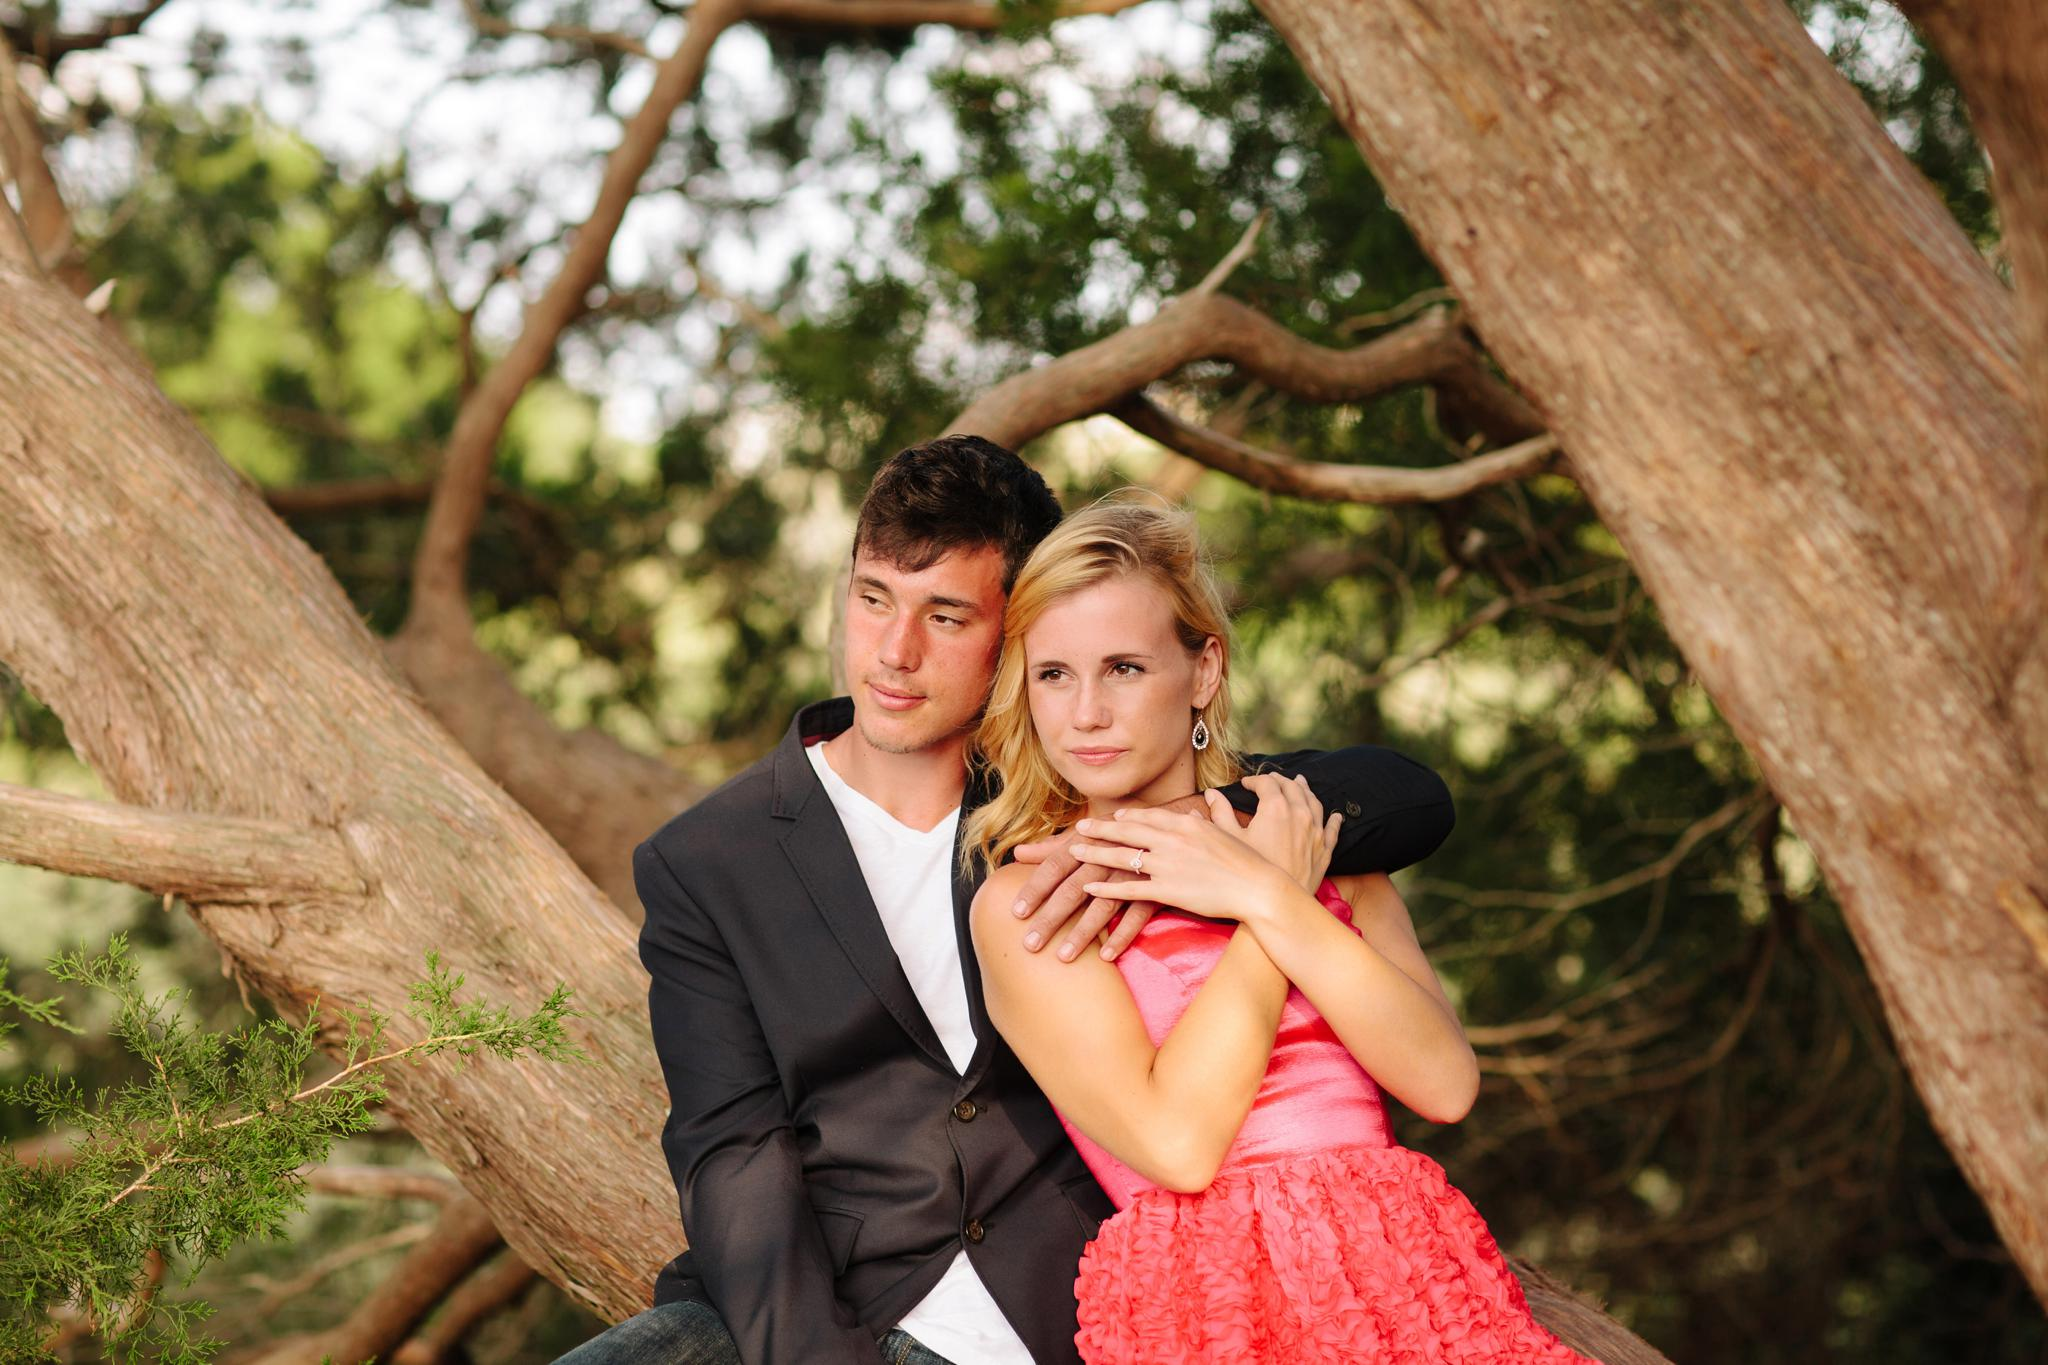 harbor_island_engagement_8201.jpg